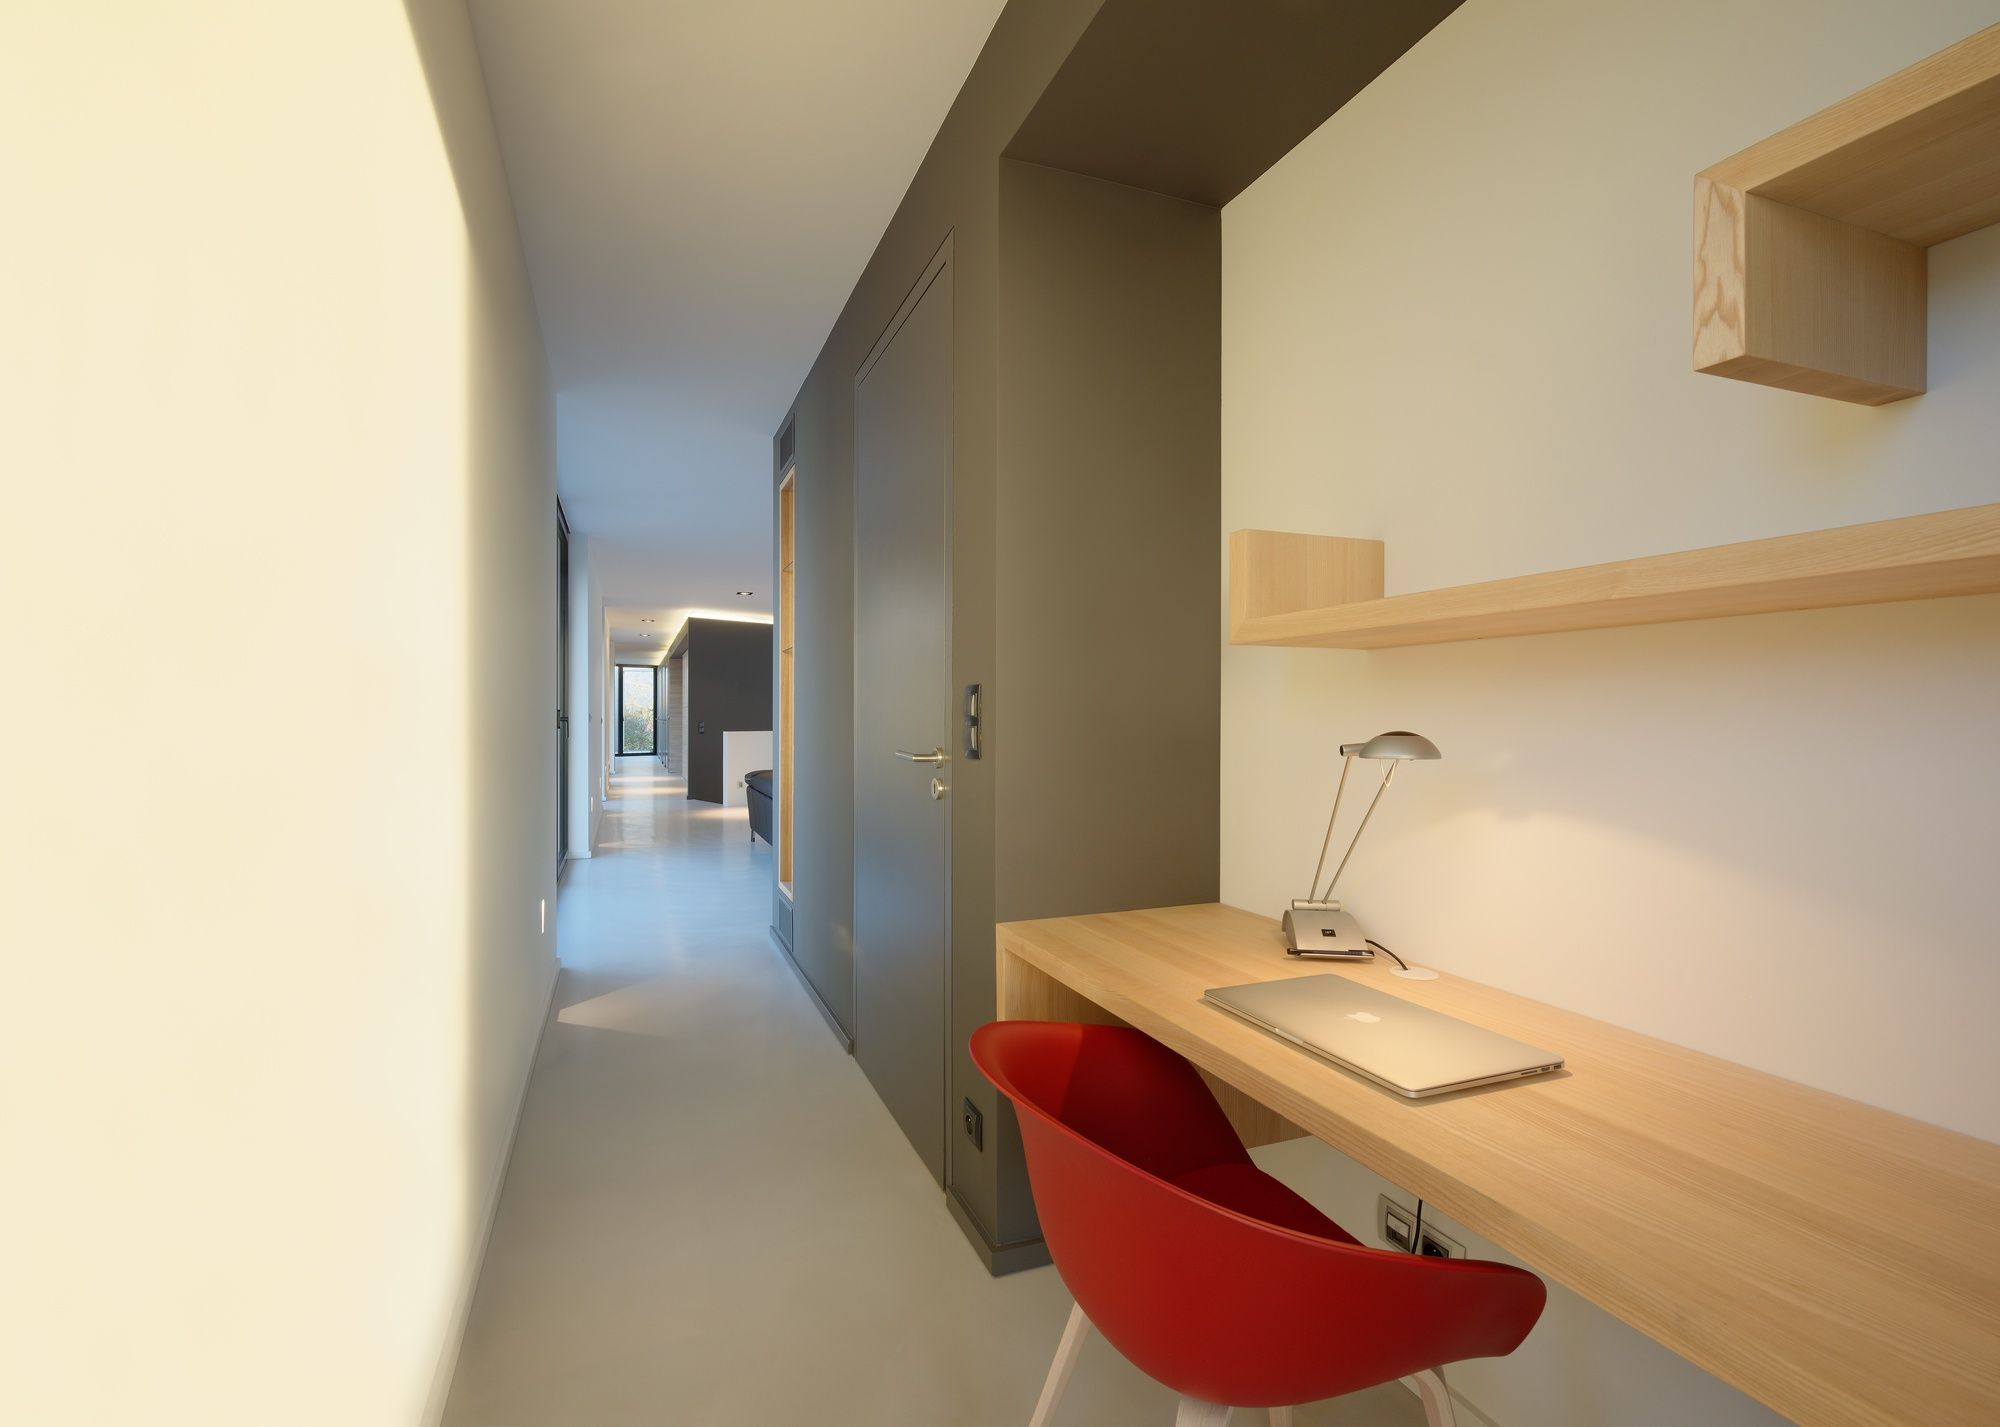 Image 4 of 37 from gallery of House S  / Ideaa Architectures. Photograph by Alain-Marc Oberlé